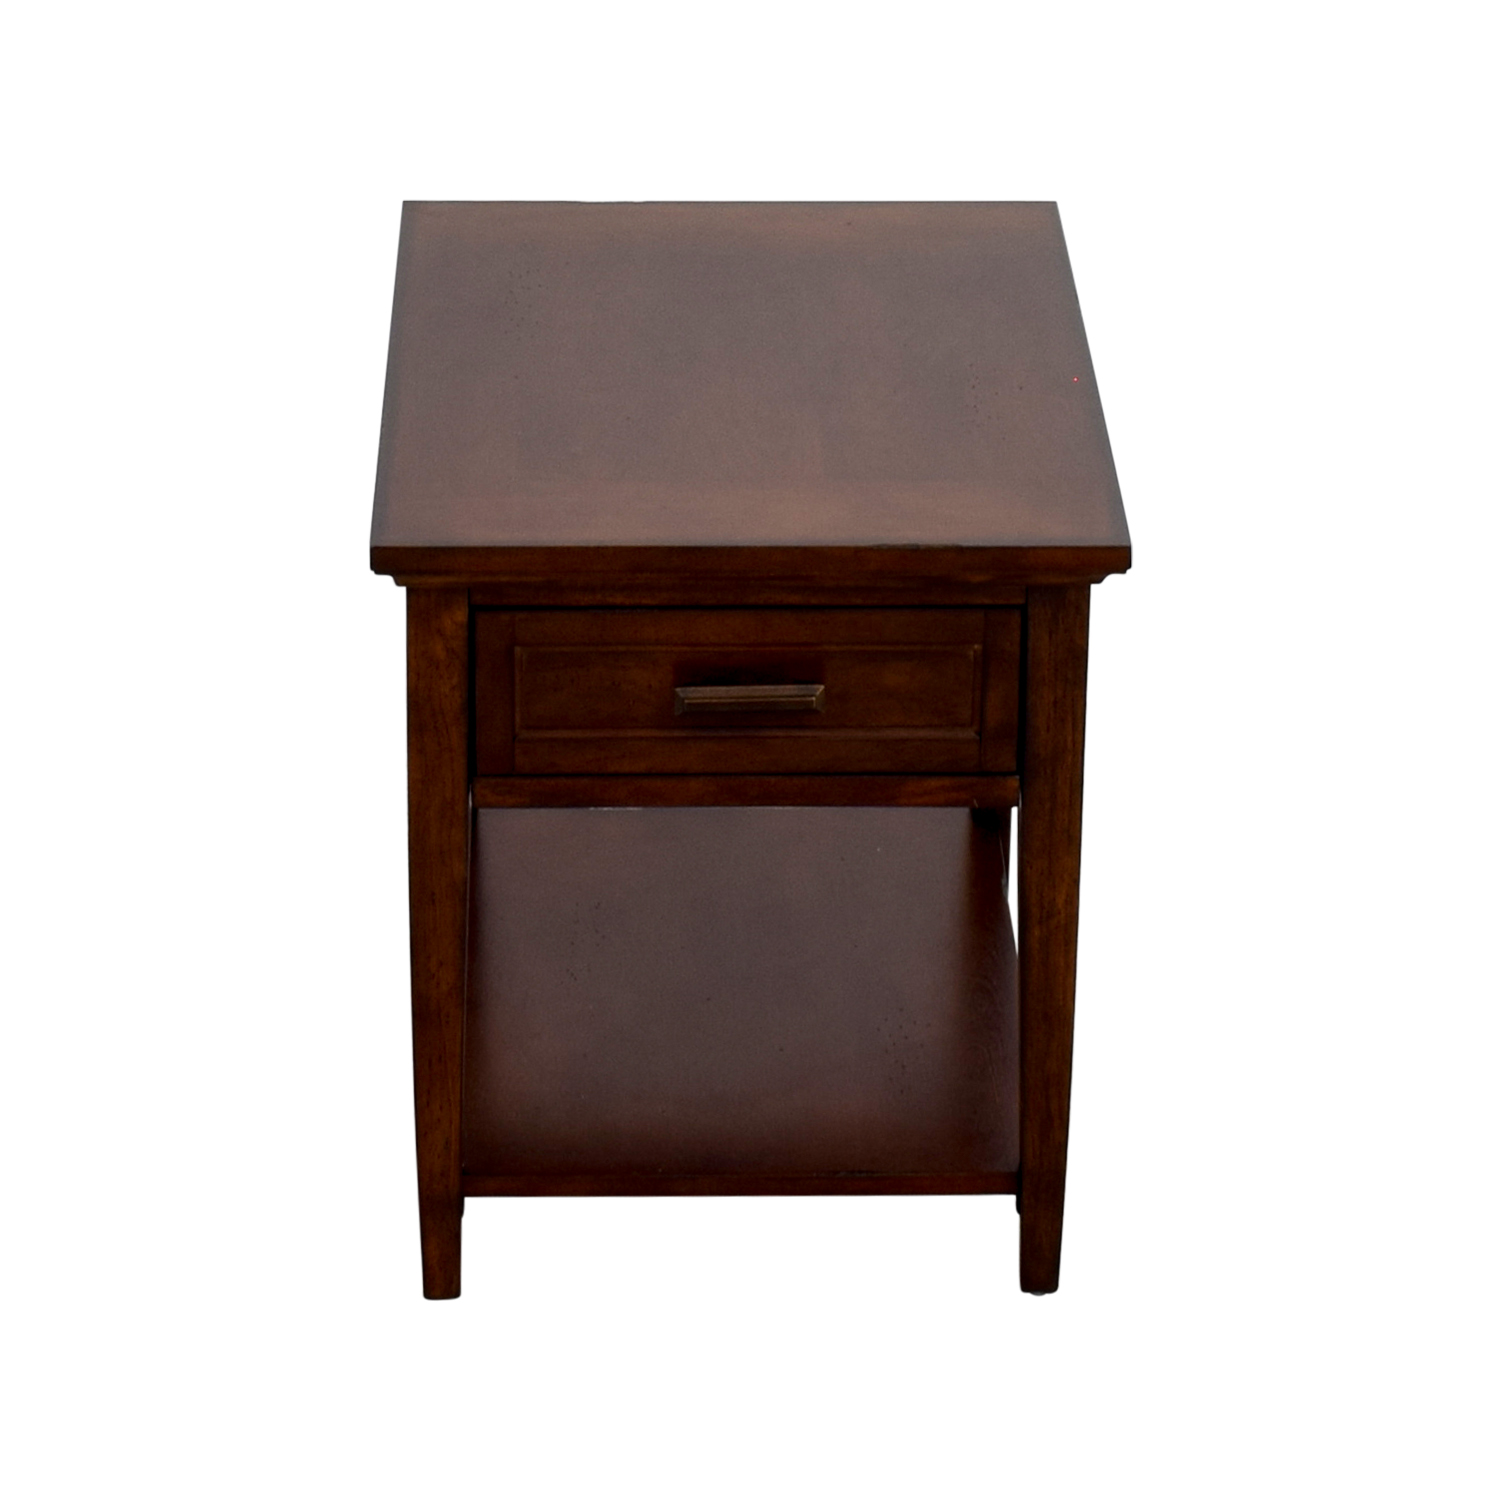 Raymour & Flanigan Raymour & Flanigan Harbour Bay End Table for sale